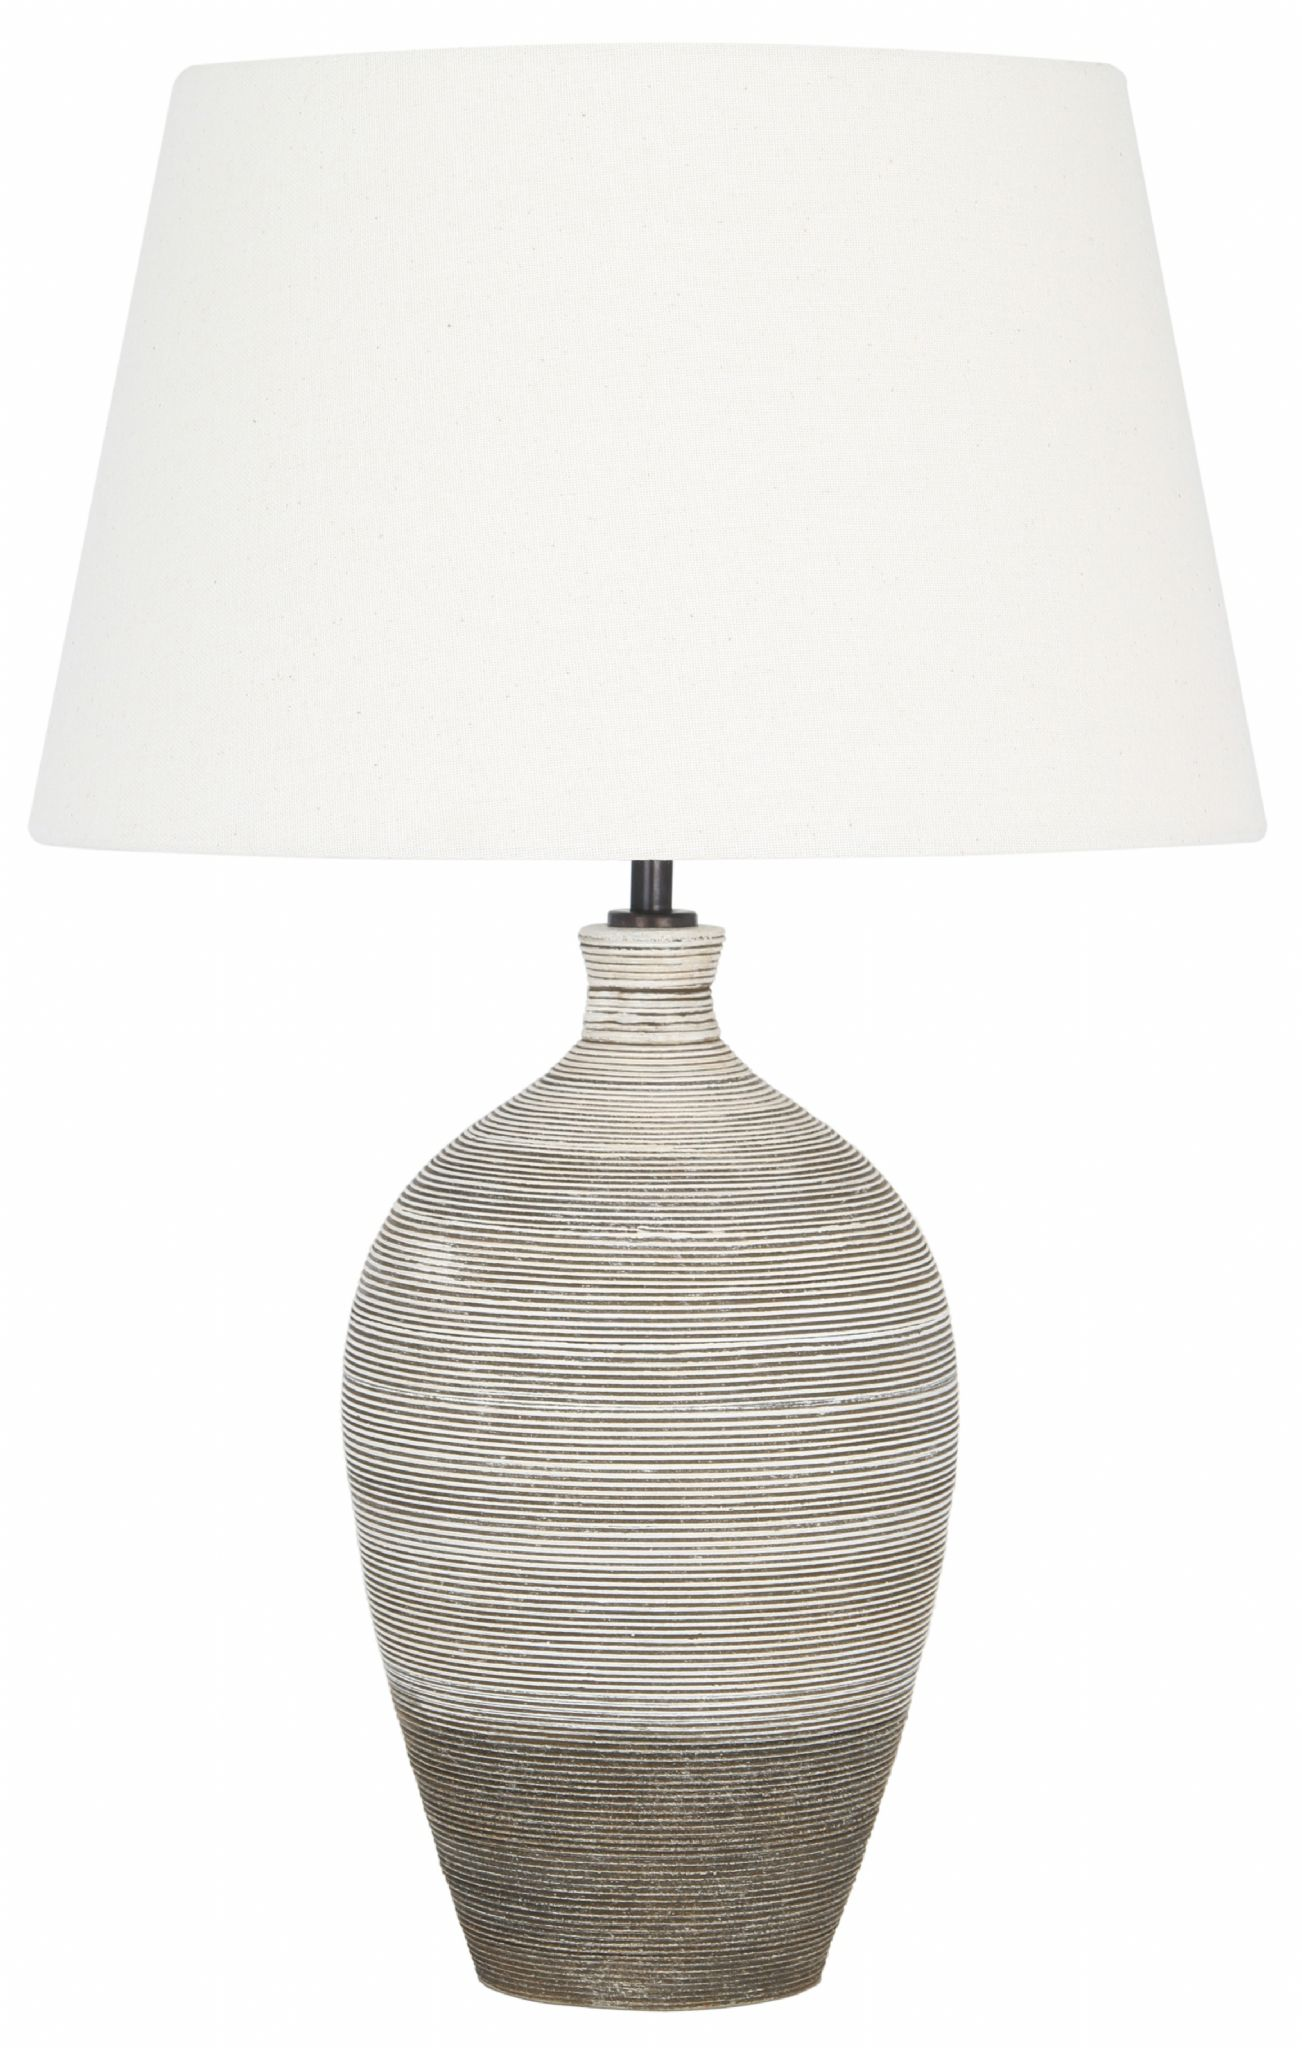 Ceramic Textured Grey Table Lamp Base